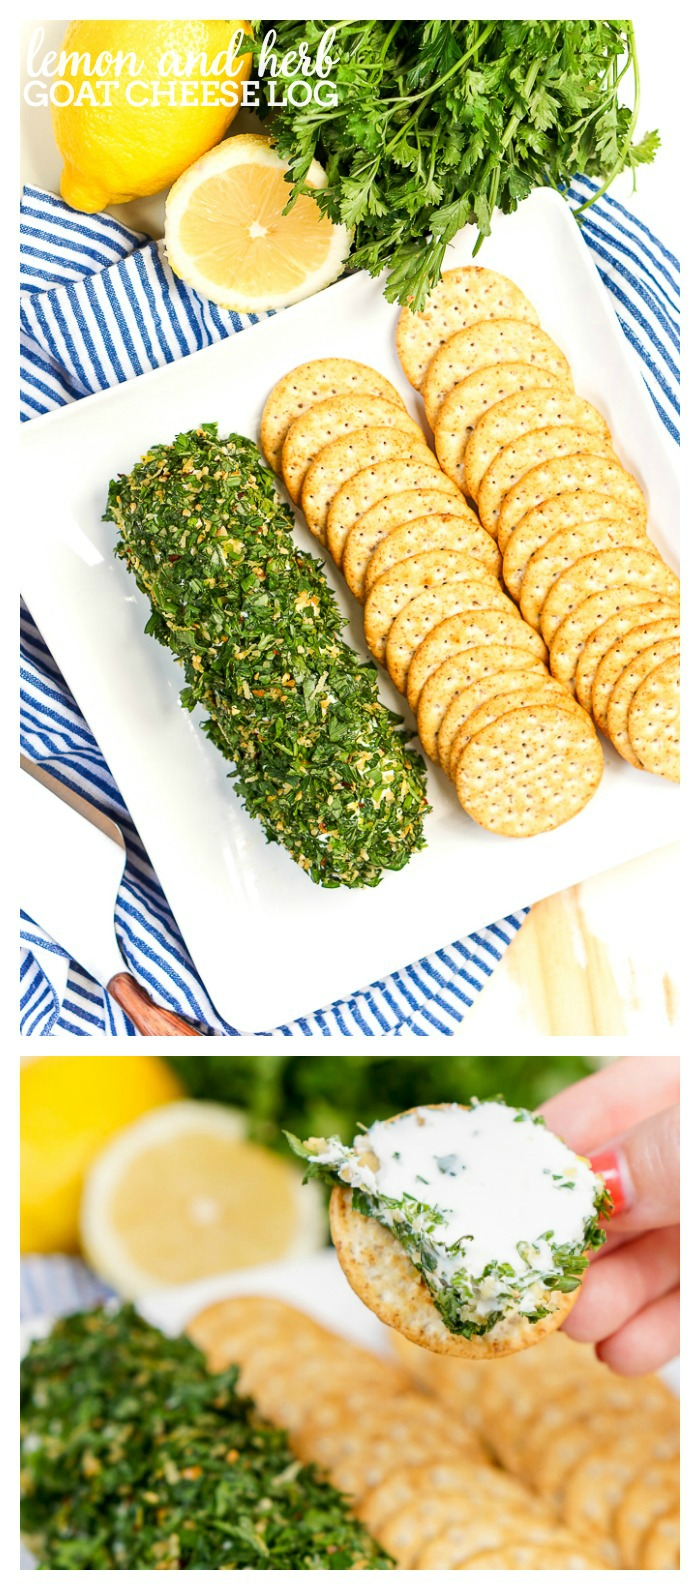 Lemon and Herb Goat Cheese Log - A light and refreshing appetizer that guests will love all year long! Plus, it's such an easy appetizer recipe to prep, it's a shame not to! | The Love Nerds